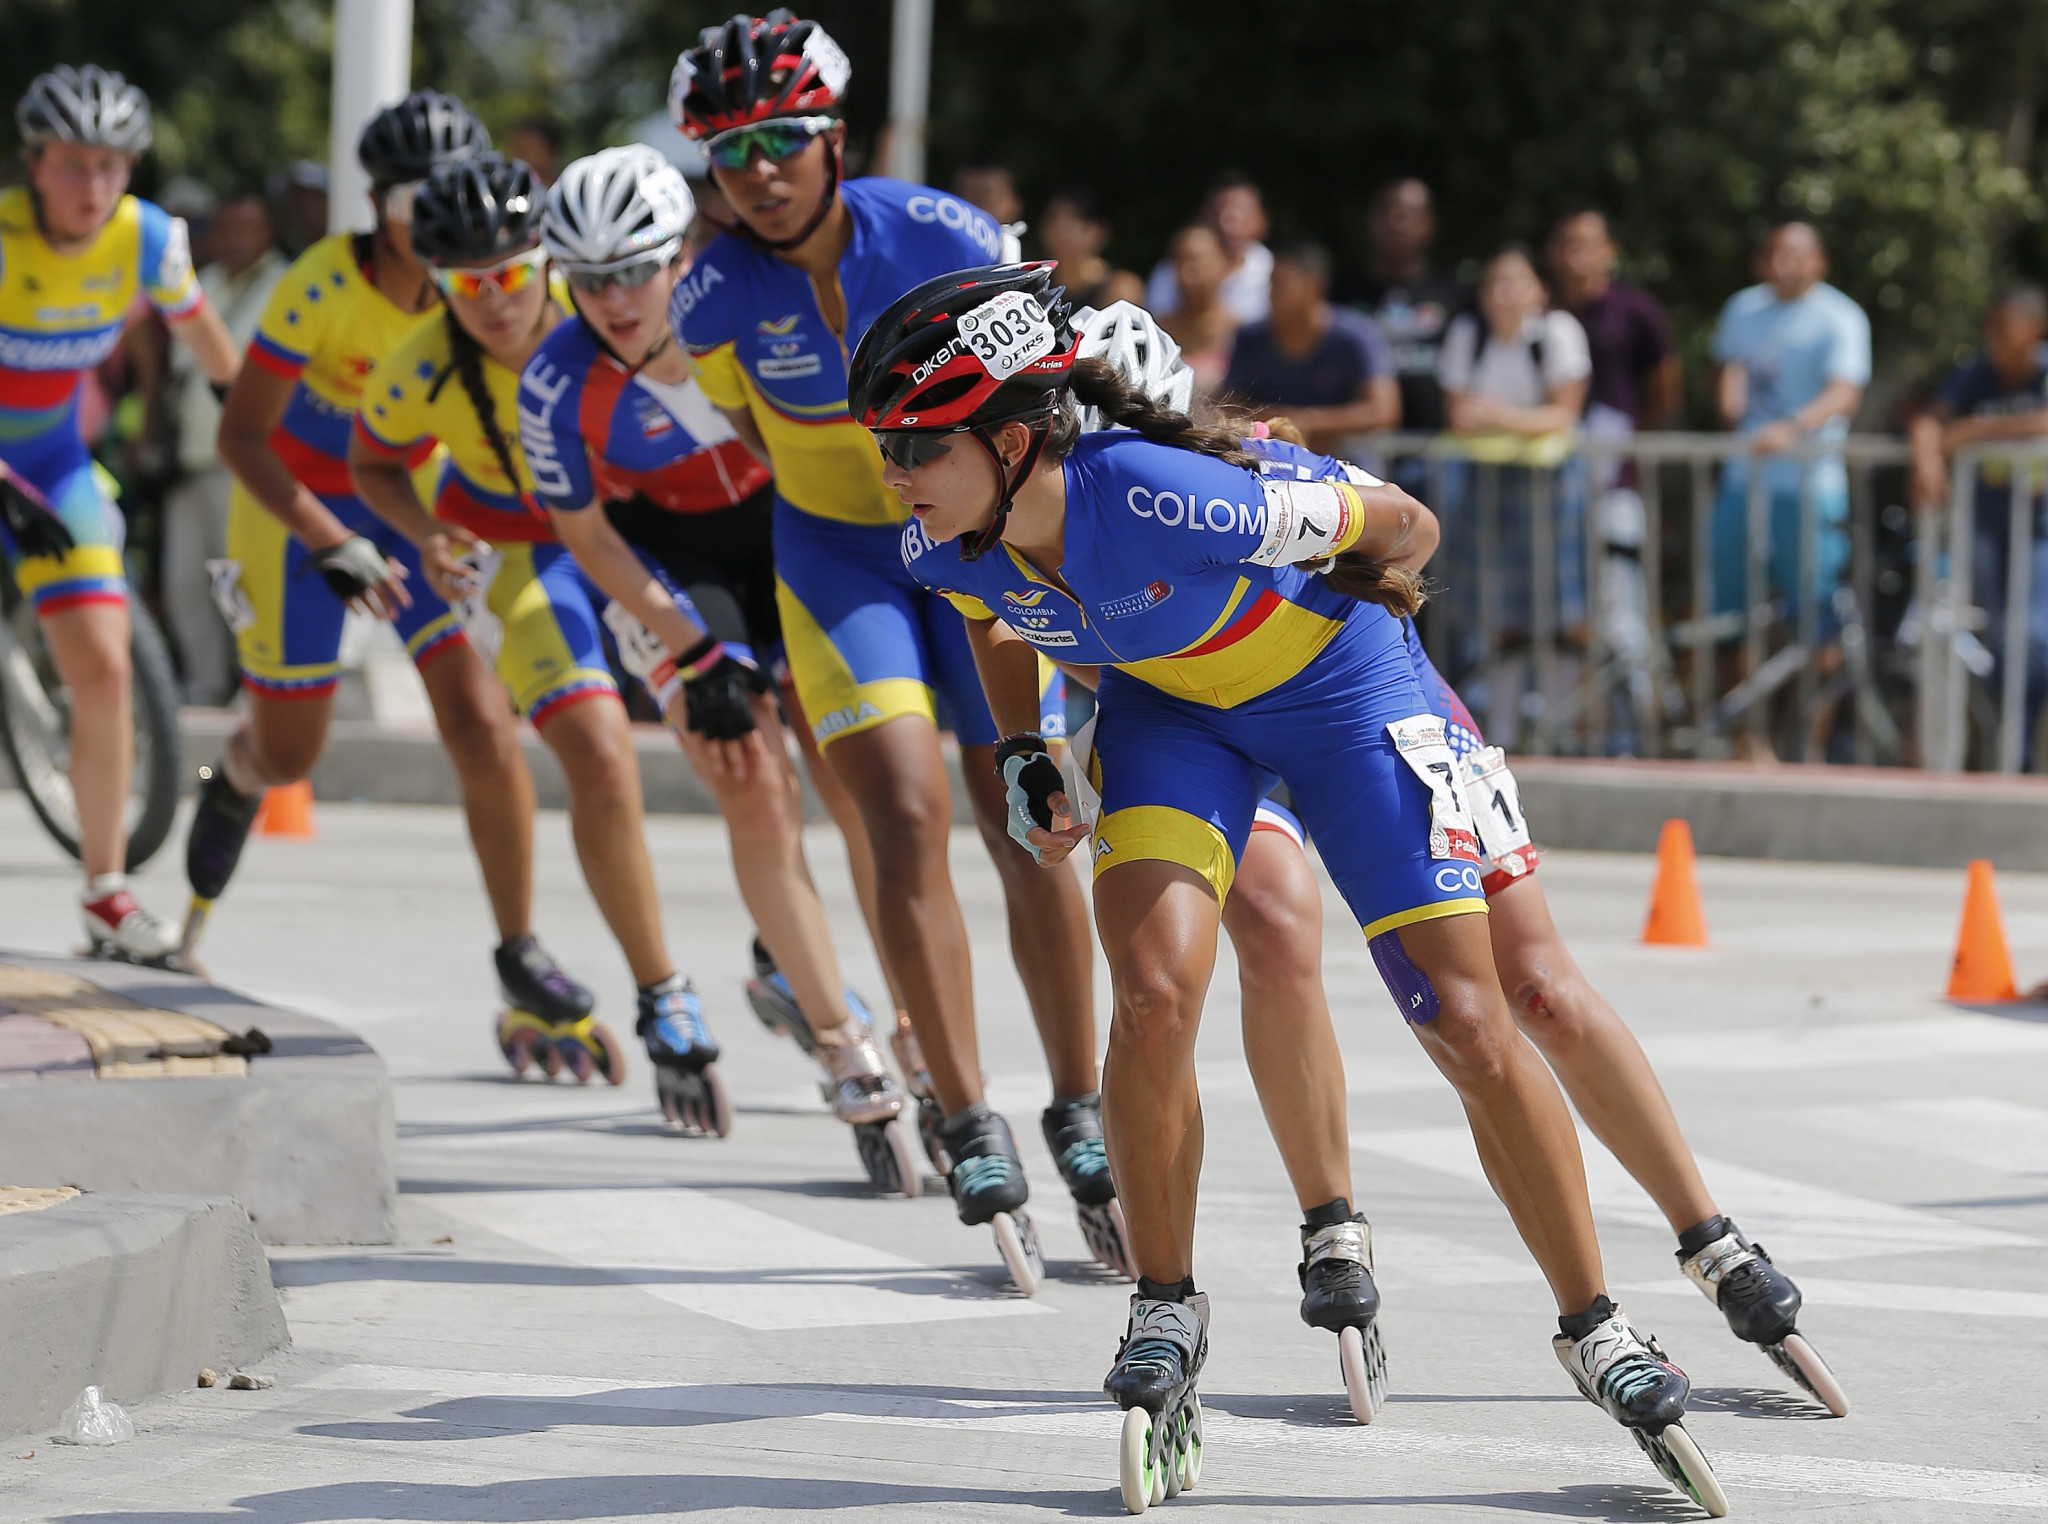 Colombia continue to dominate Inline Speed Skating World Championships